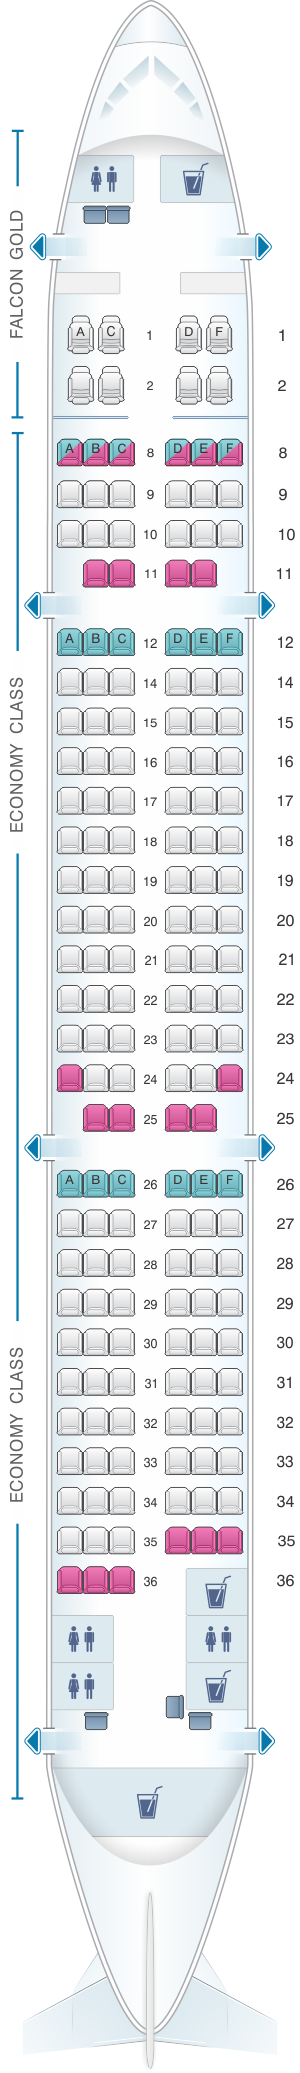 Seat map for Gulf Air  Airbus A321ER